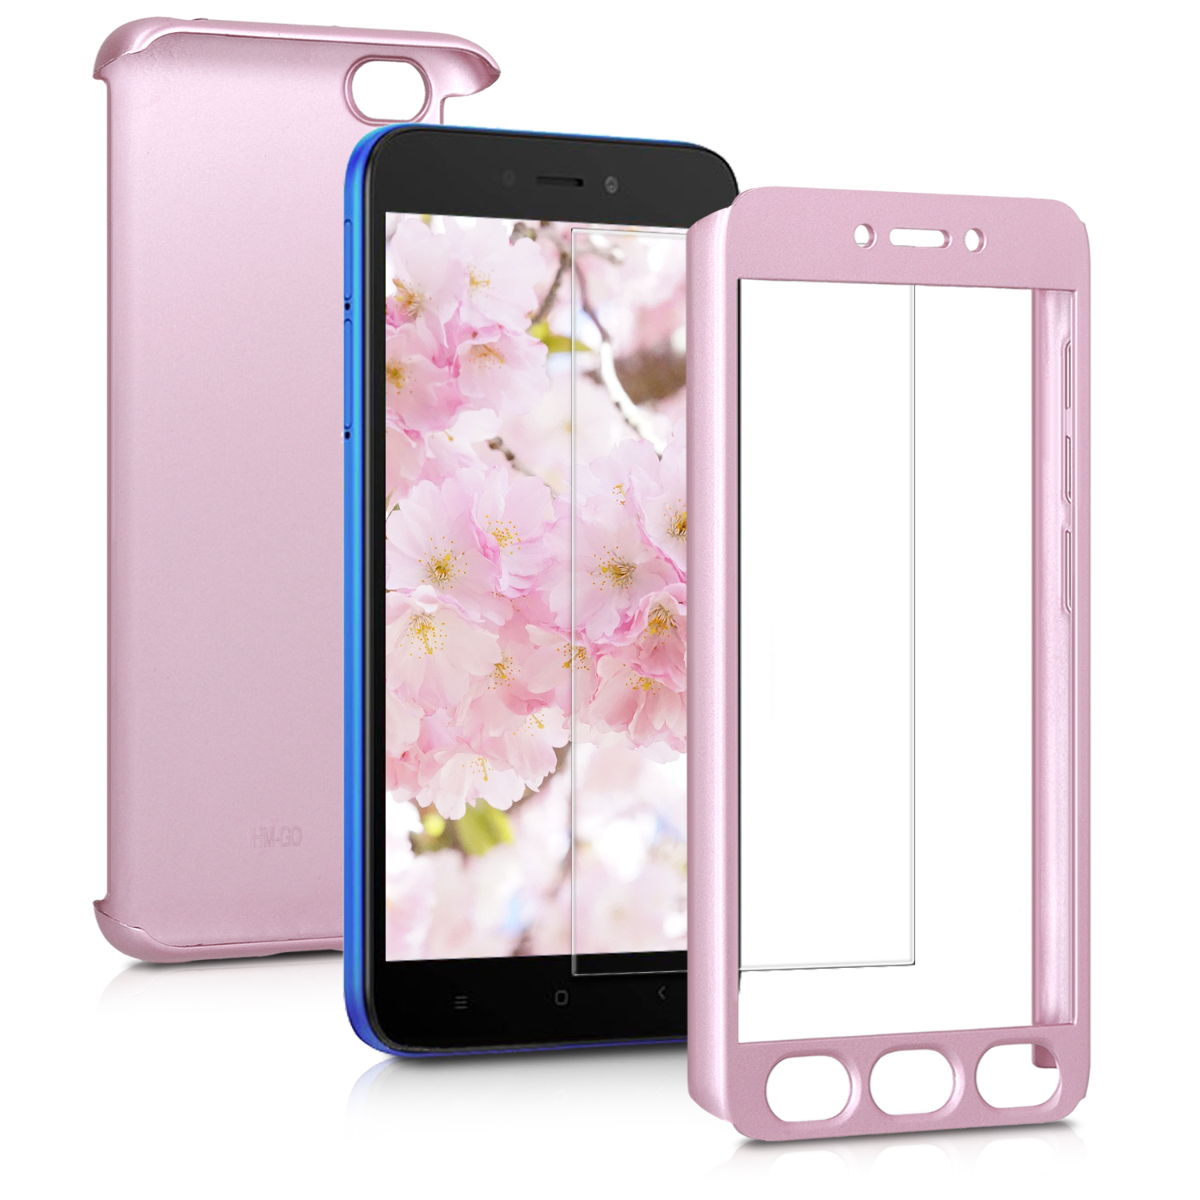 KW Full Body Θήκη Xiaomi Redmi Go & Tempered Glass - Metallic Rose Gold (47713.31)